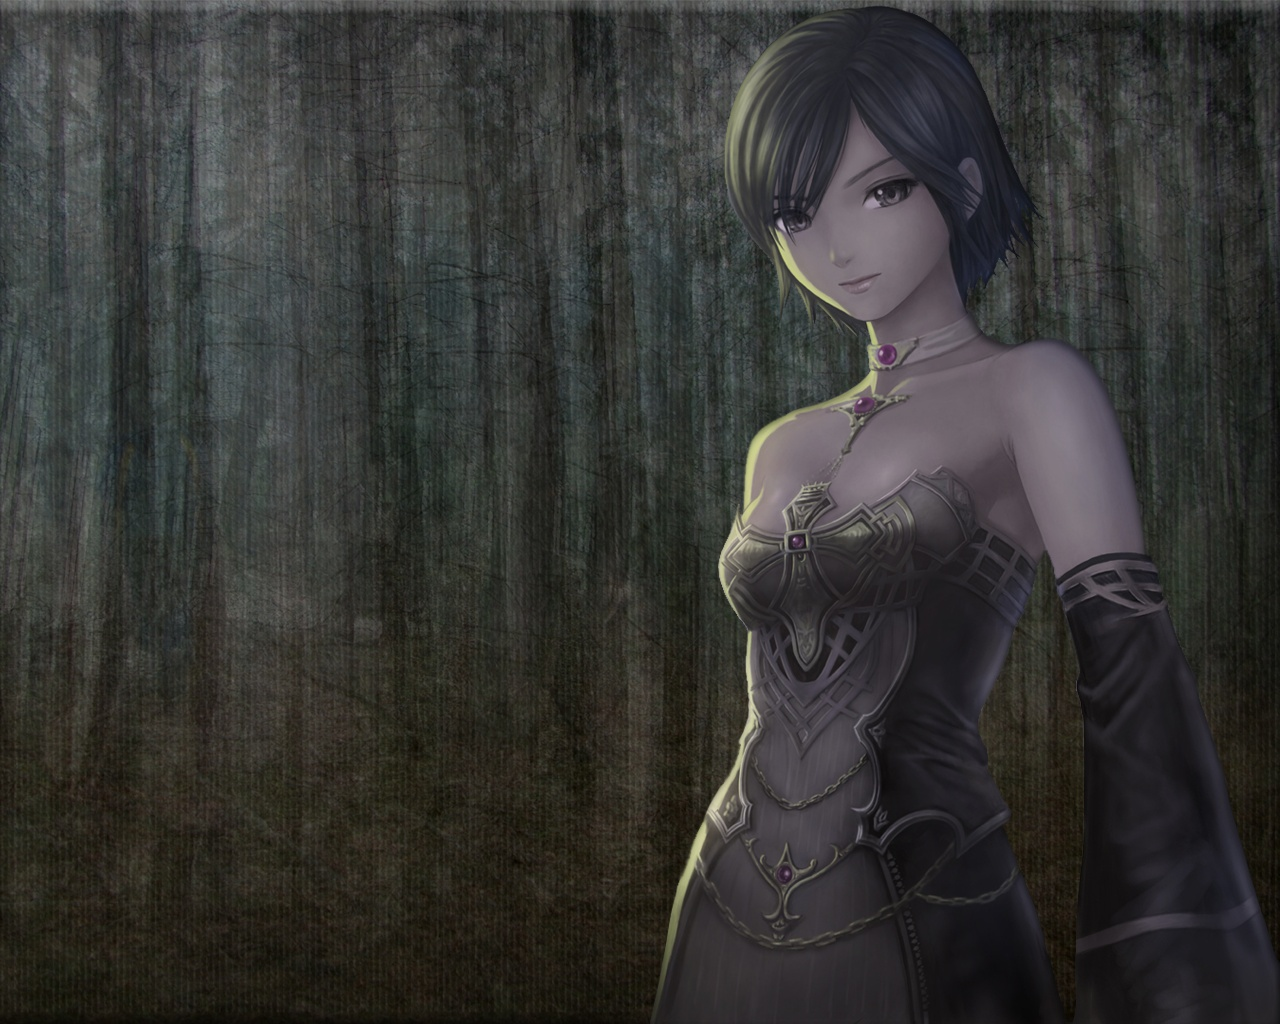 lineage 2 gothic dress HD Wallpaper